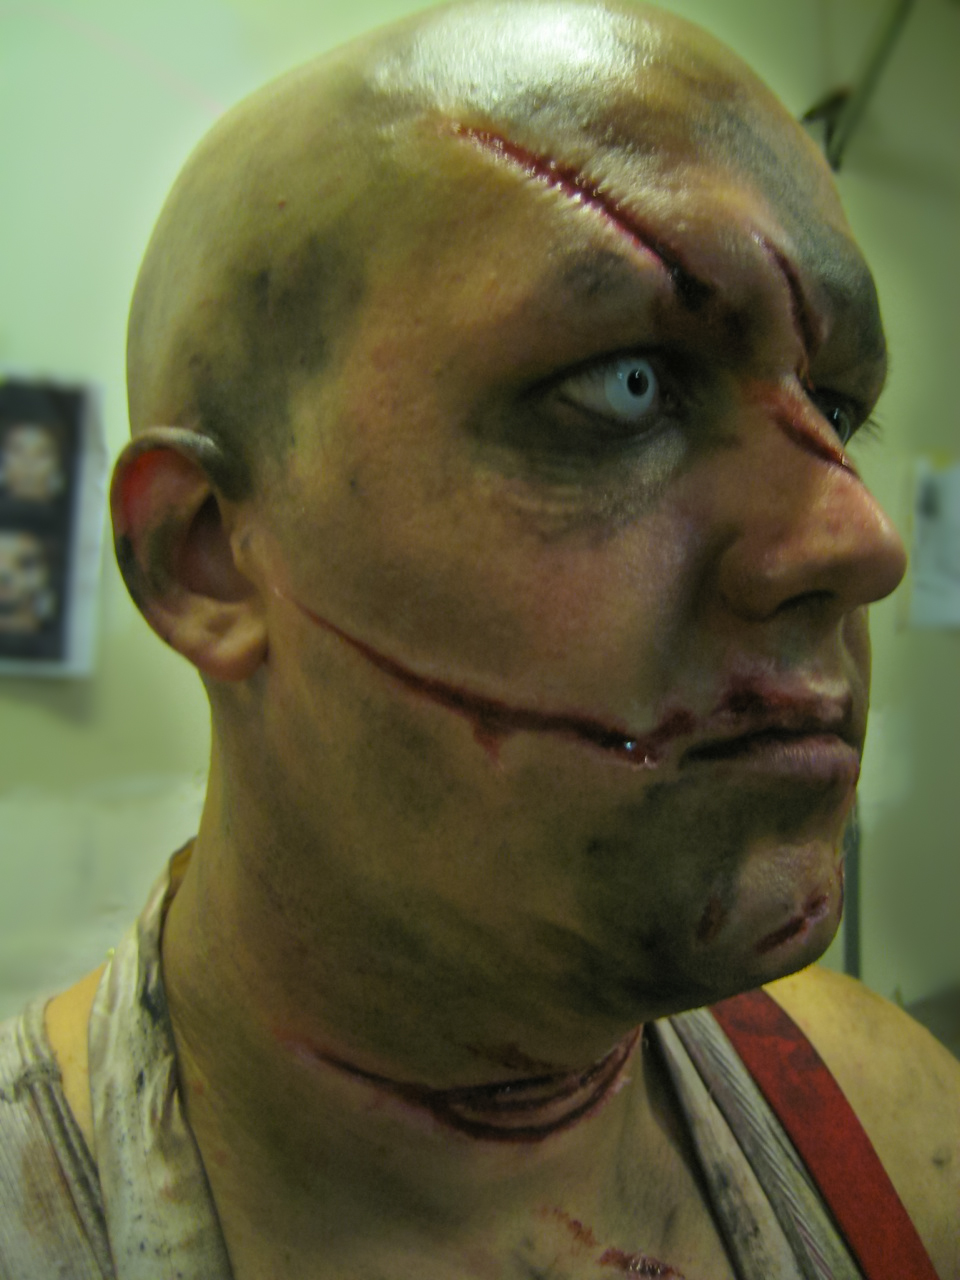 Christina Cofran, Special FX, Makeup Artist, injury, laceration, cut, accident, busted lip, butcher 001.jpg